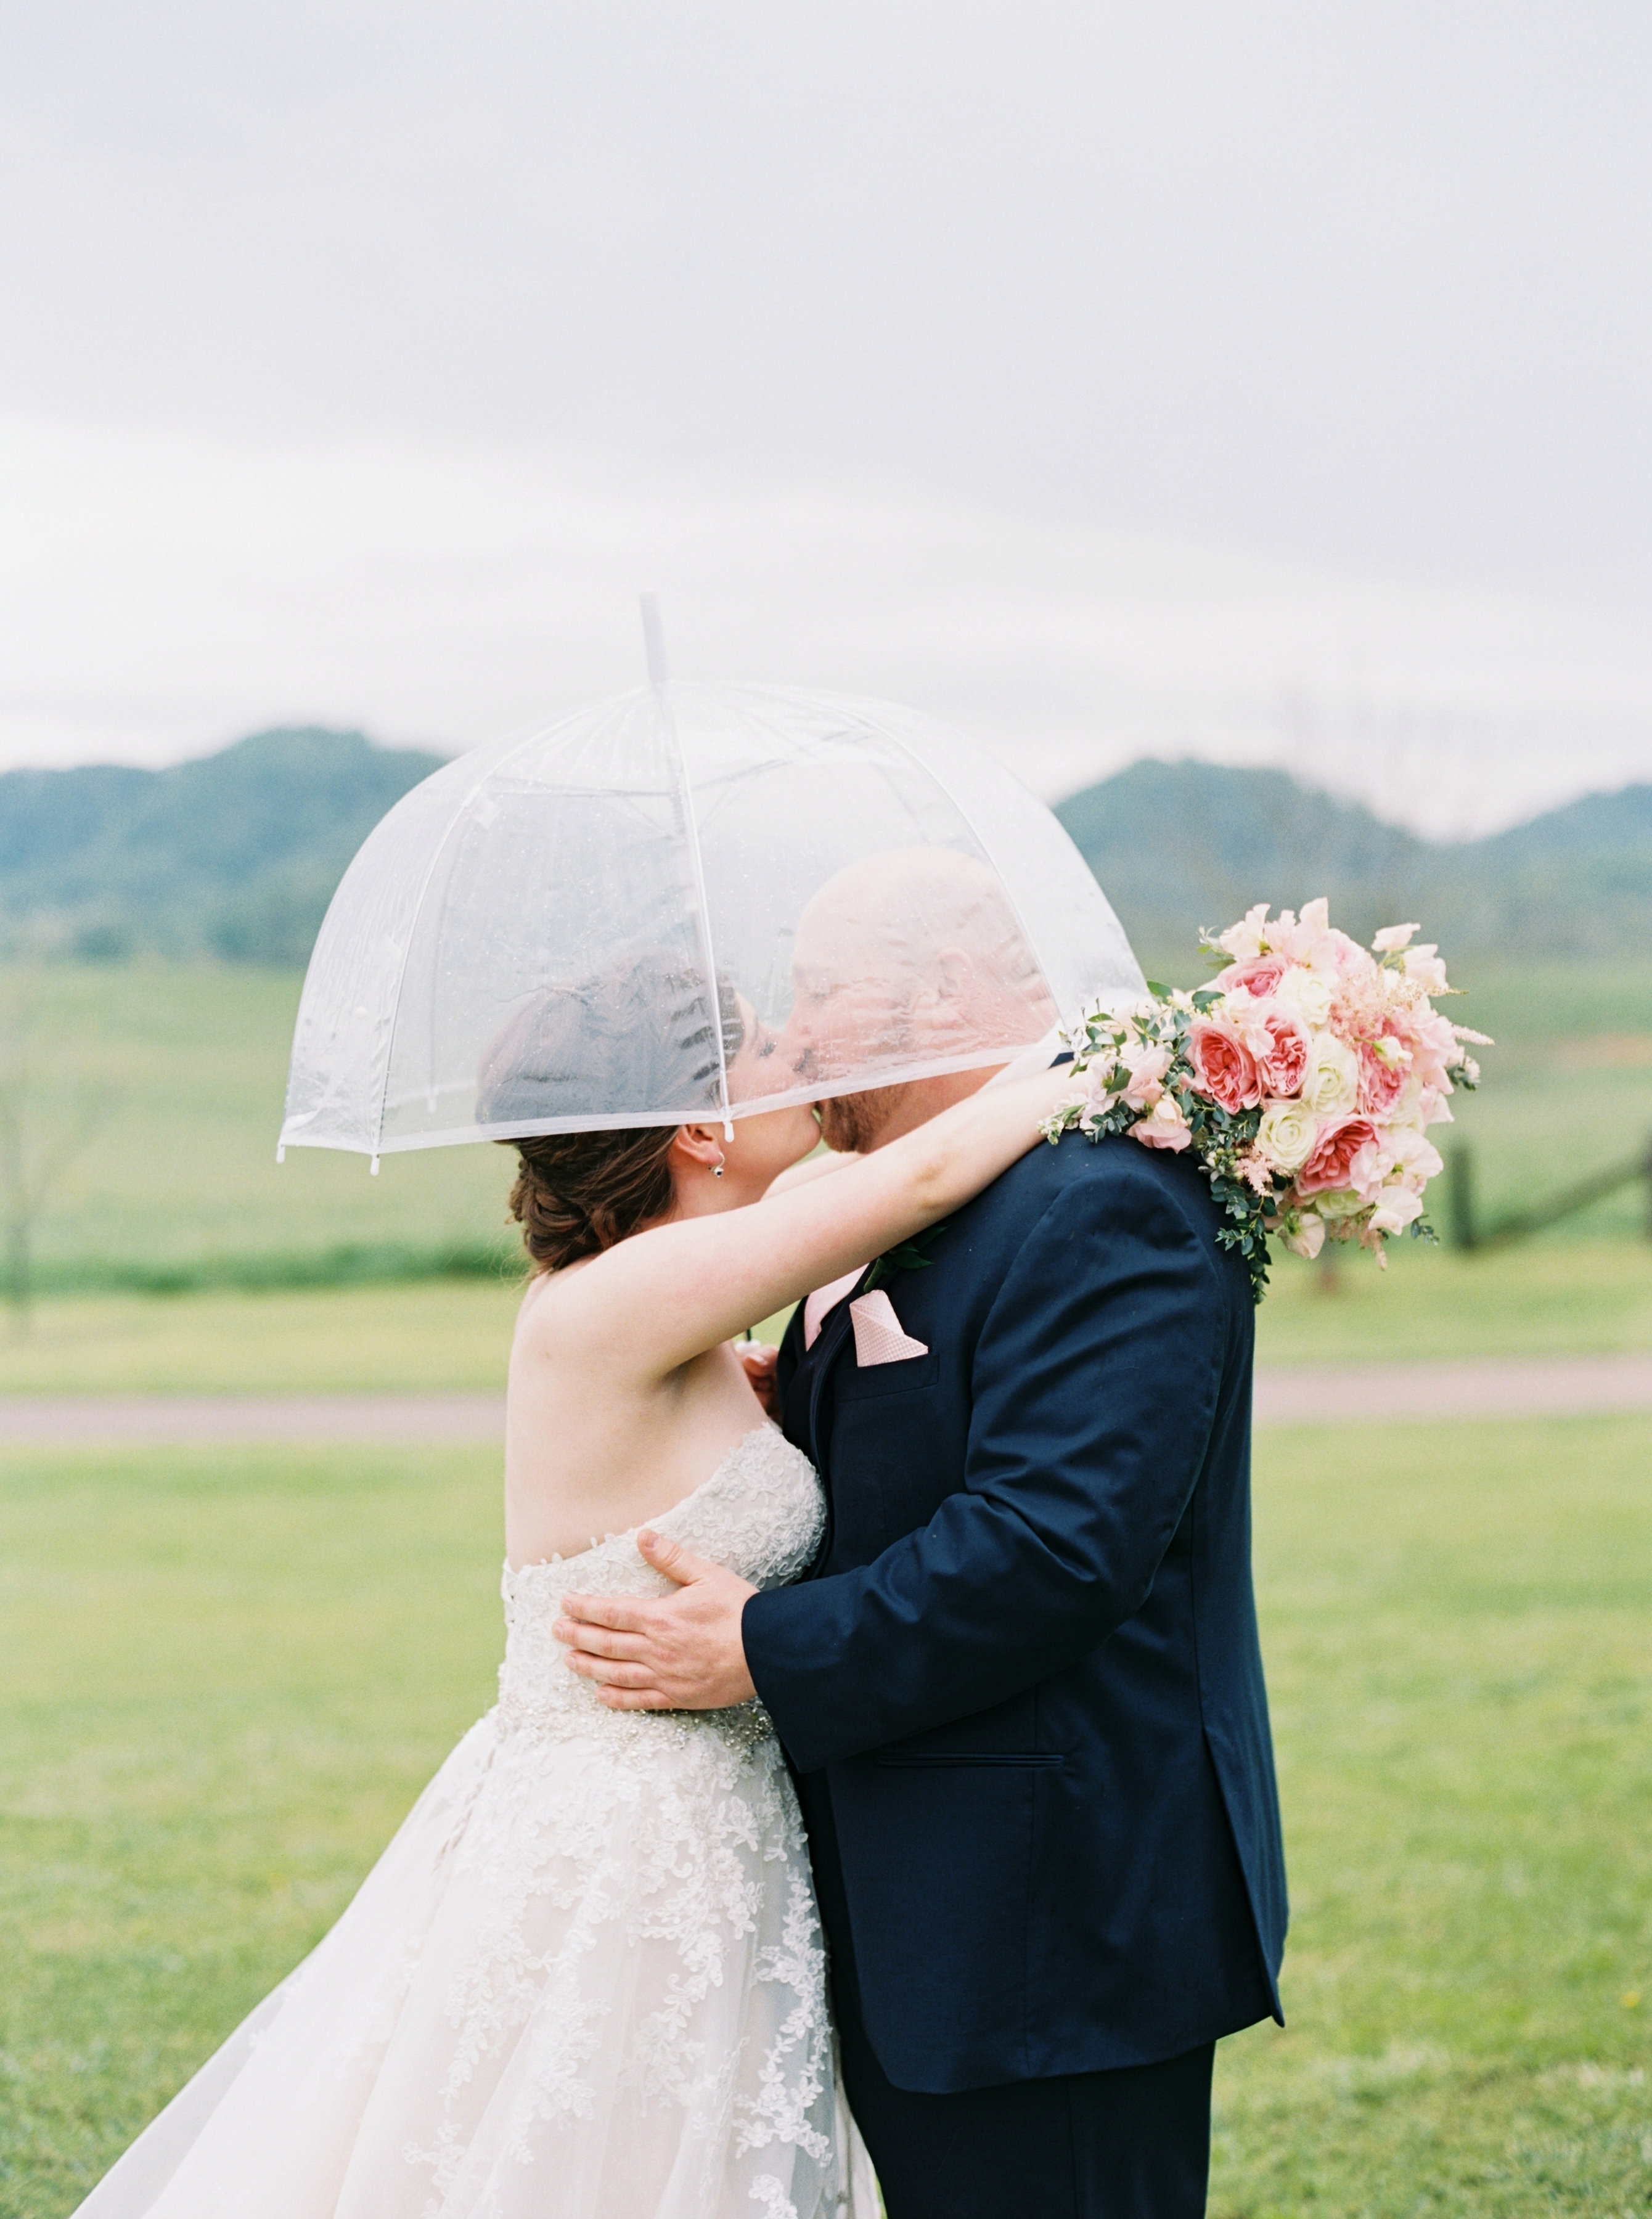 Lydia_johnathan_Wedding_Abigail_Malone_Photography-259